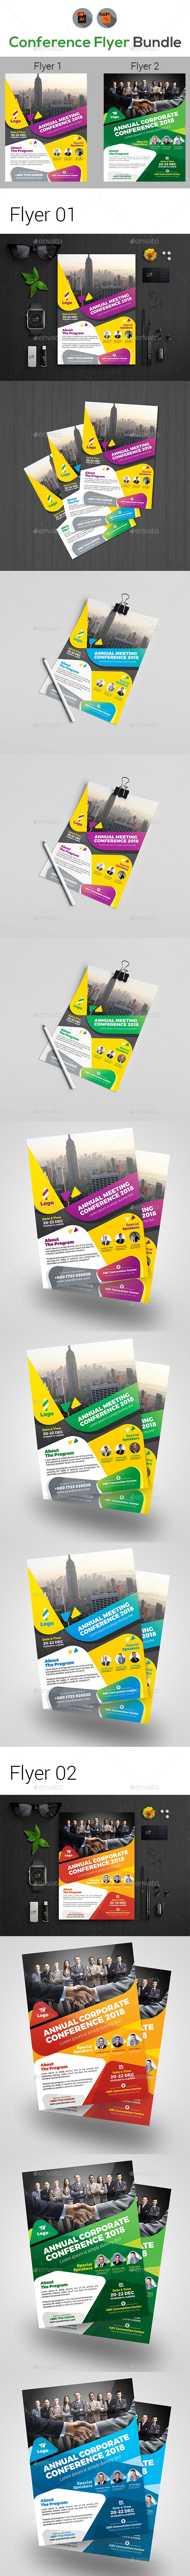 Annual Event Summit Flyer Bundle - Events Flyers